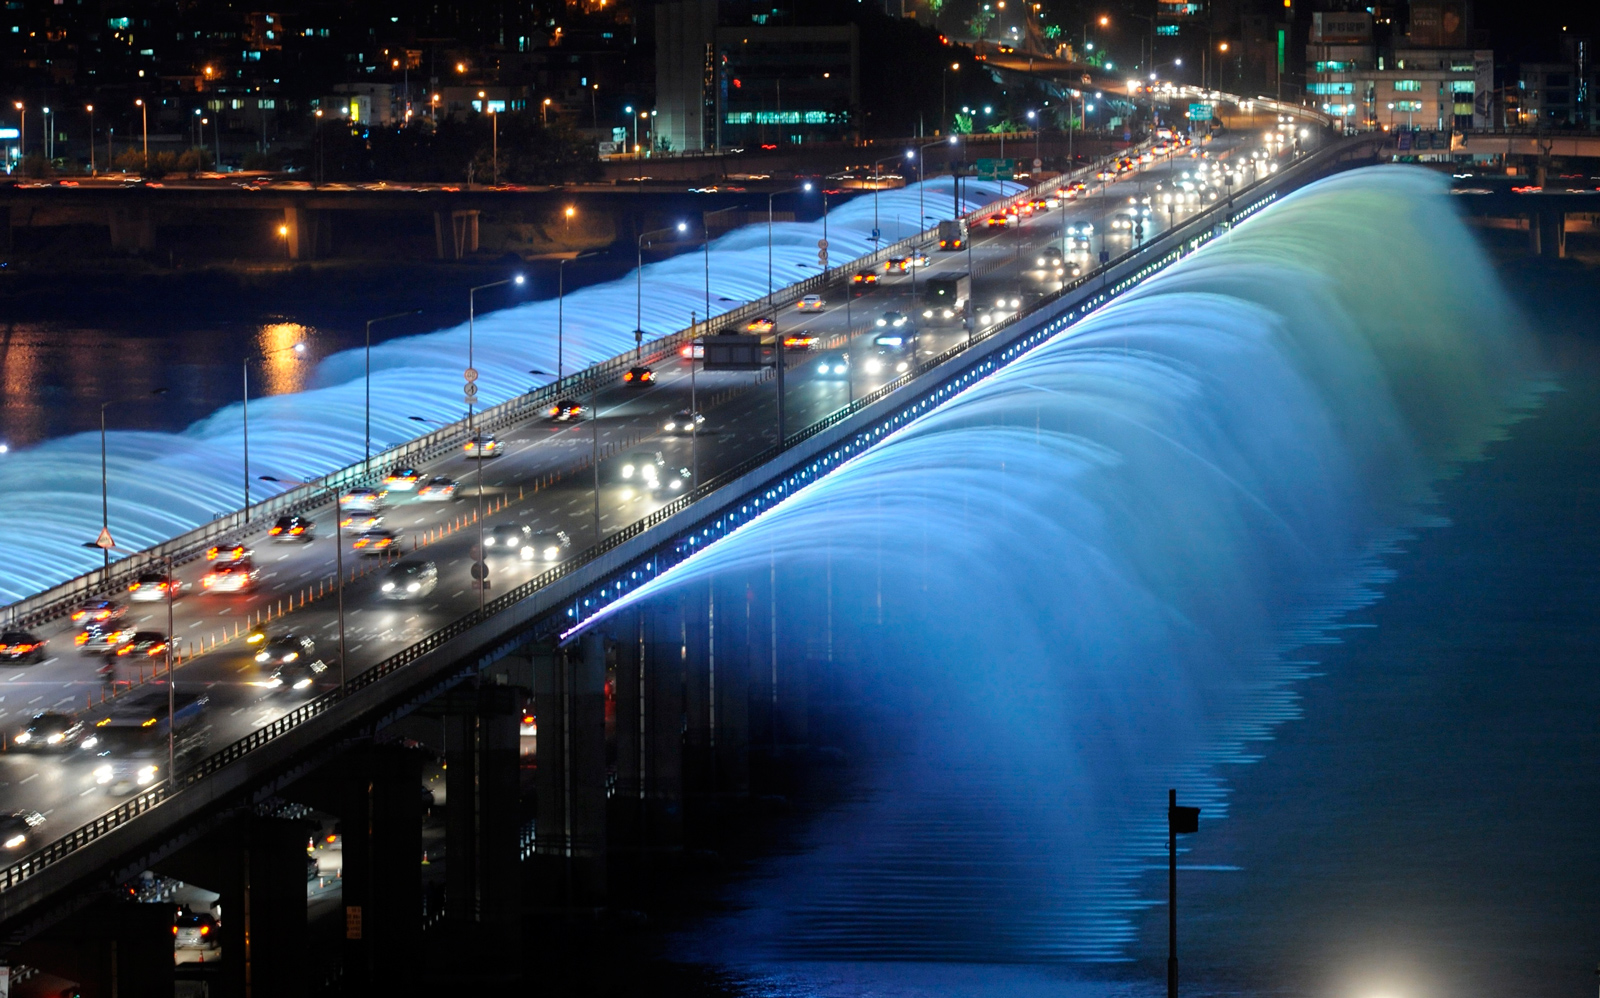 5. Banpo Girder bridge in Seoul, South Korea 3